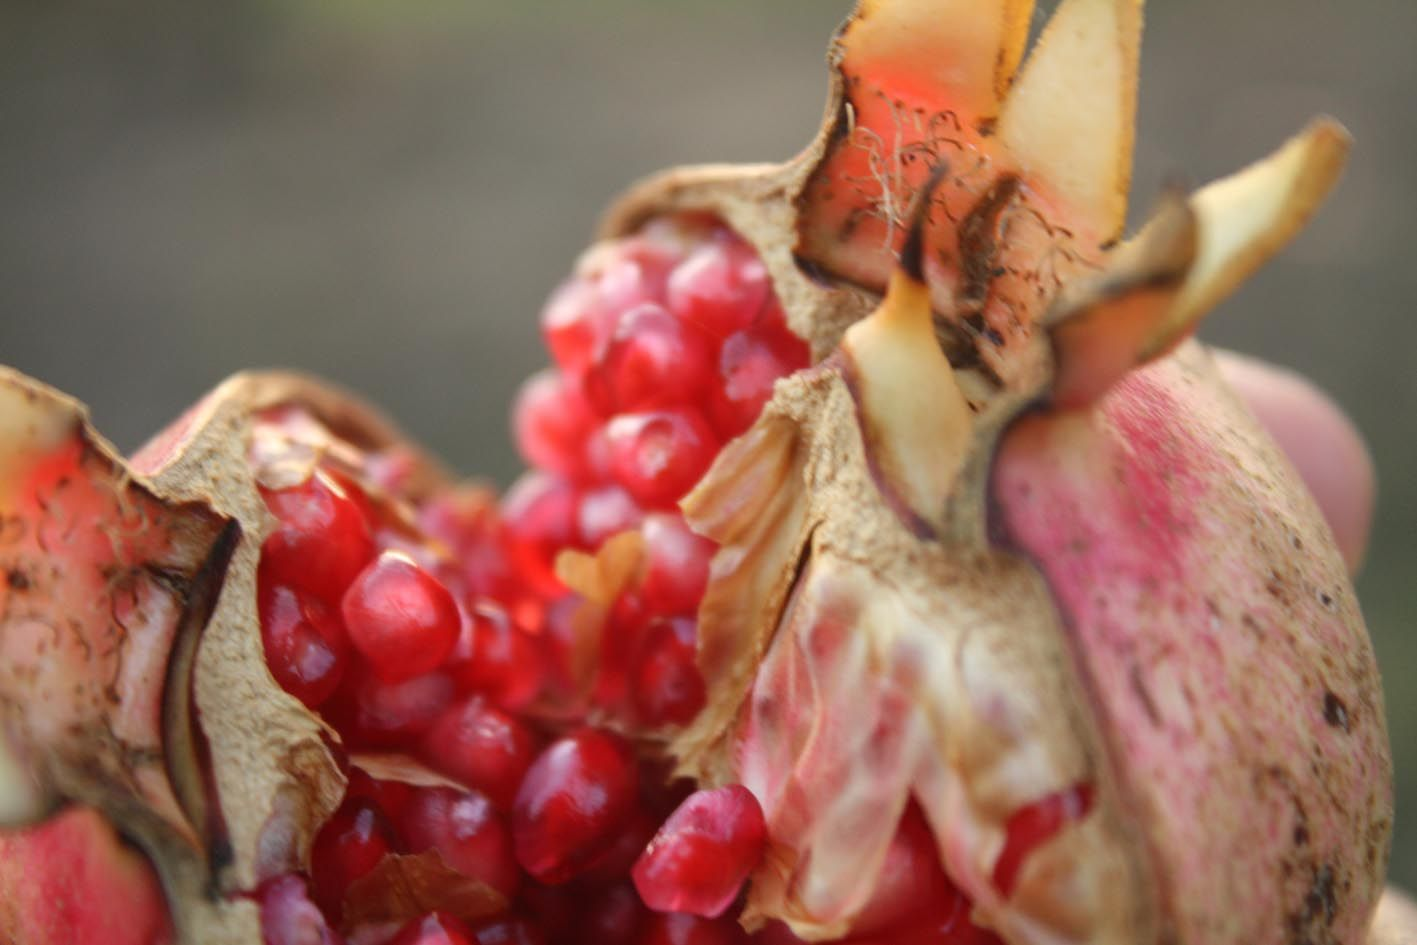 In Christian Imagery The Pomegranate Is A Natural For Death And